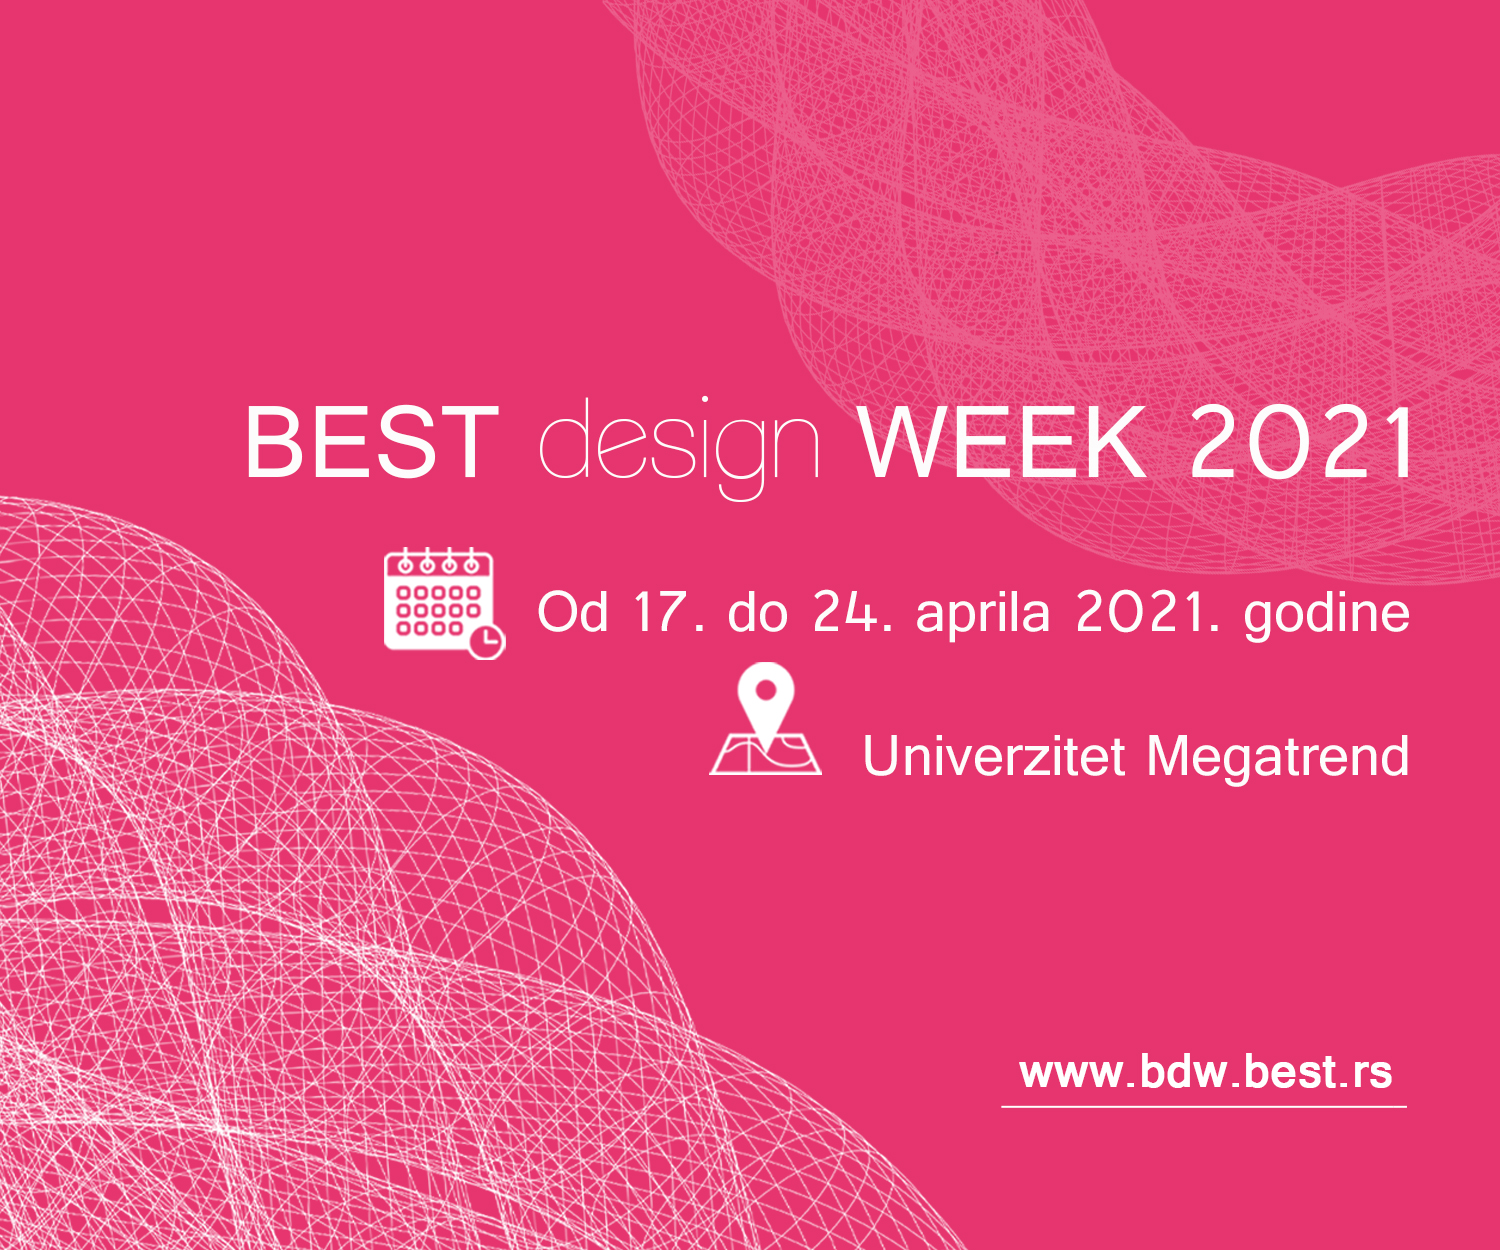 BEST design week